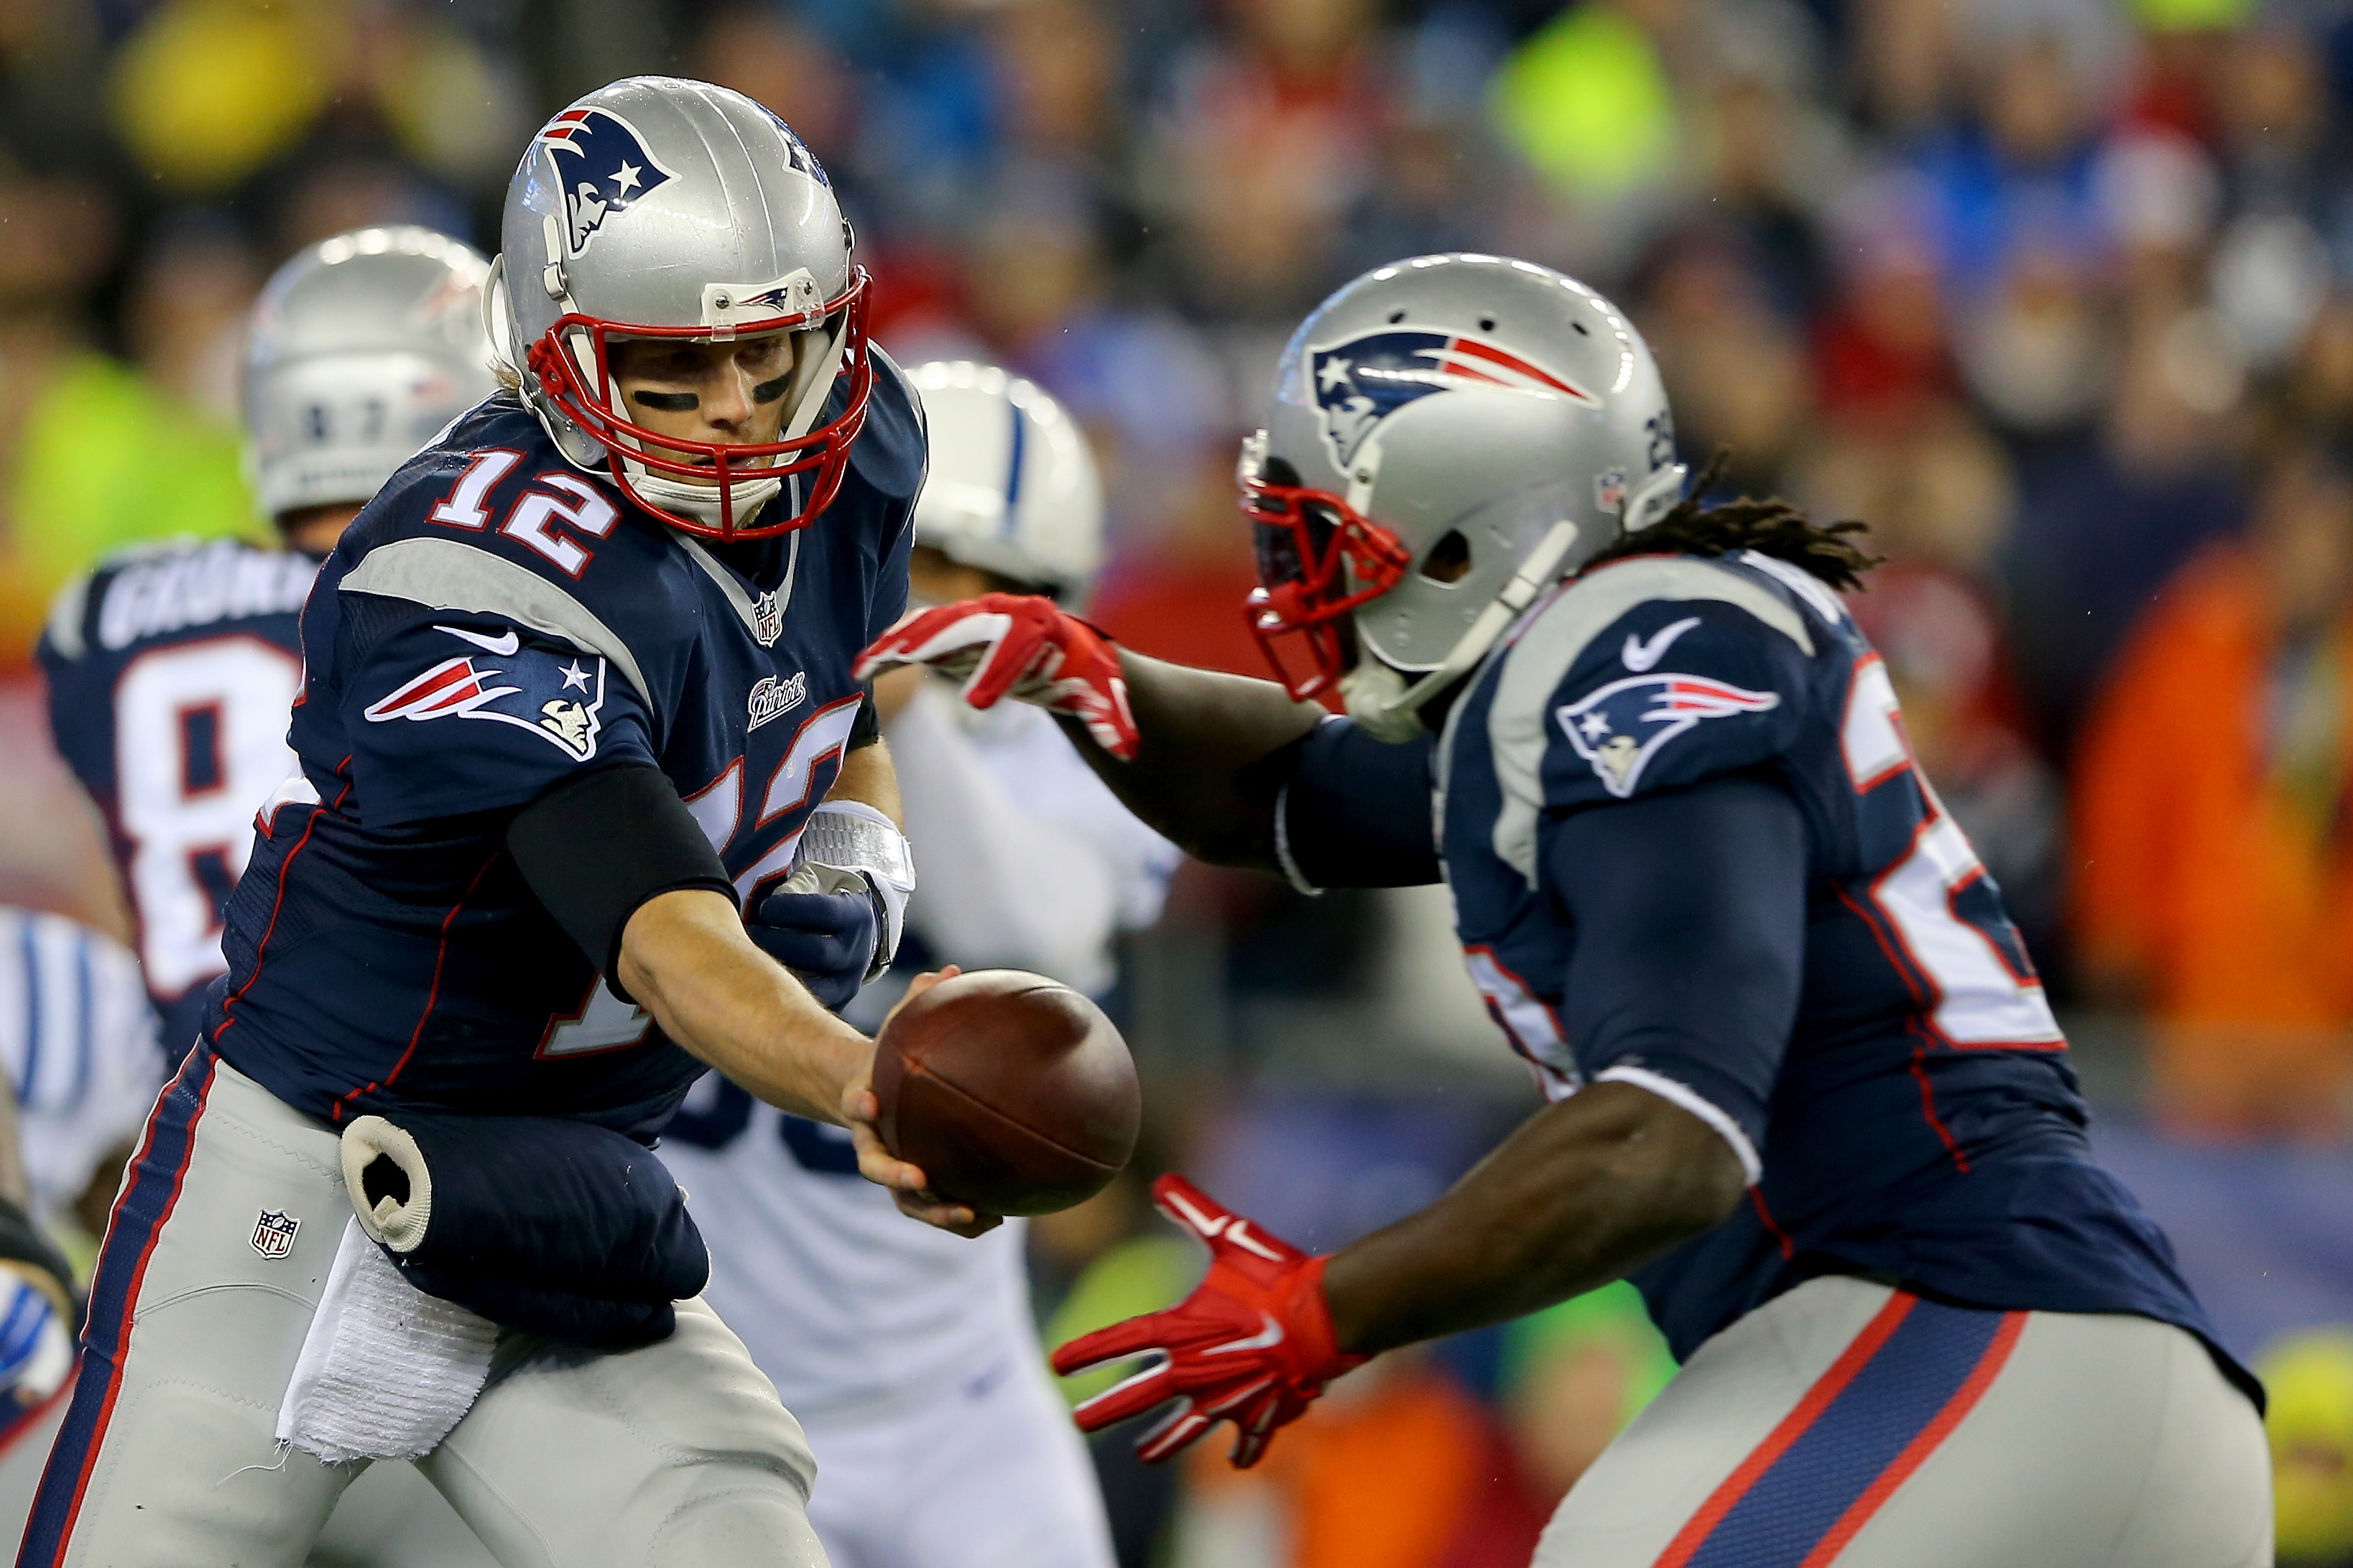 New England Patriots at the 2015 AFC Championship Game at Gillette Stadium on January 18, 2015 in  Massachusetts.